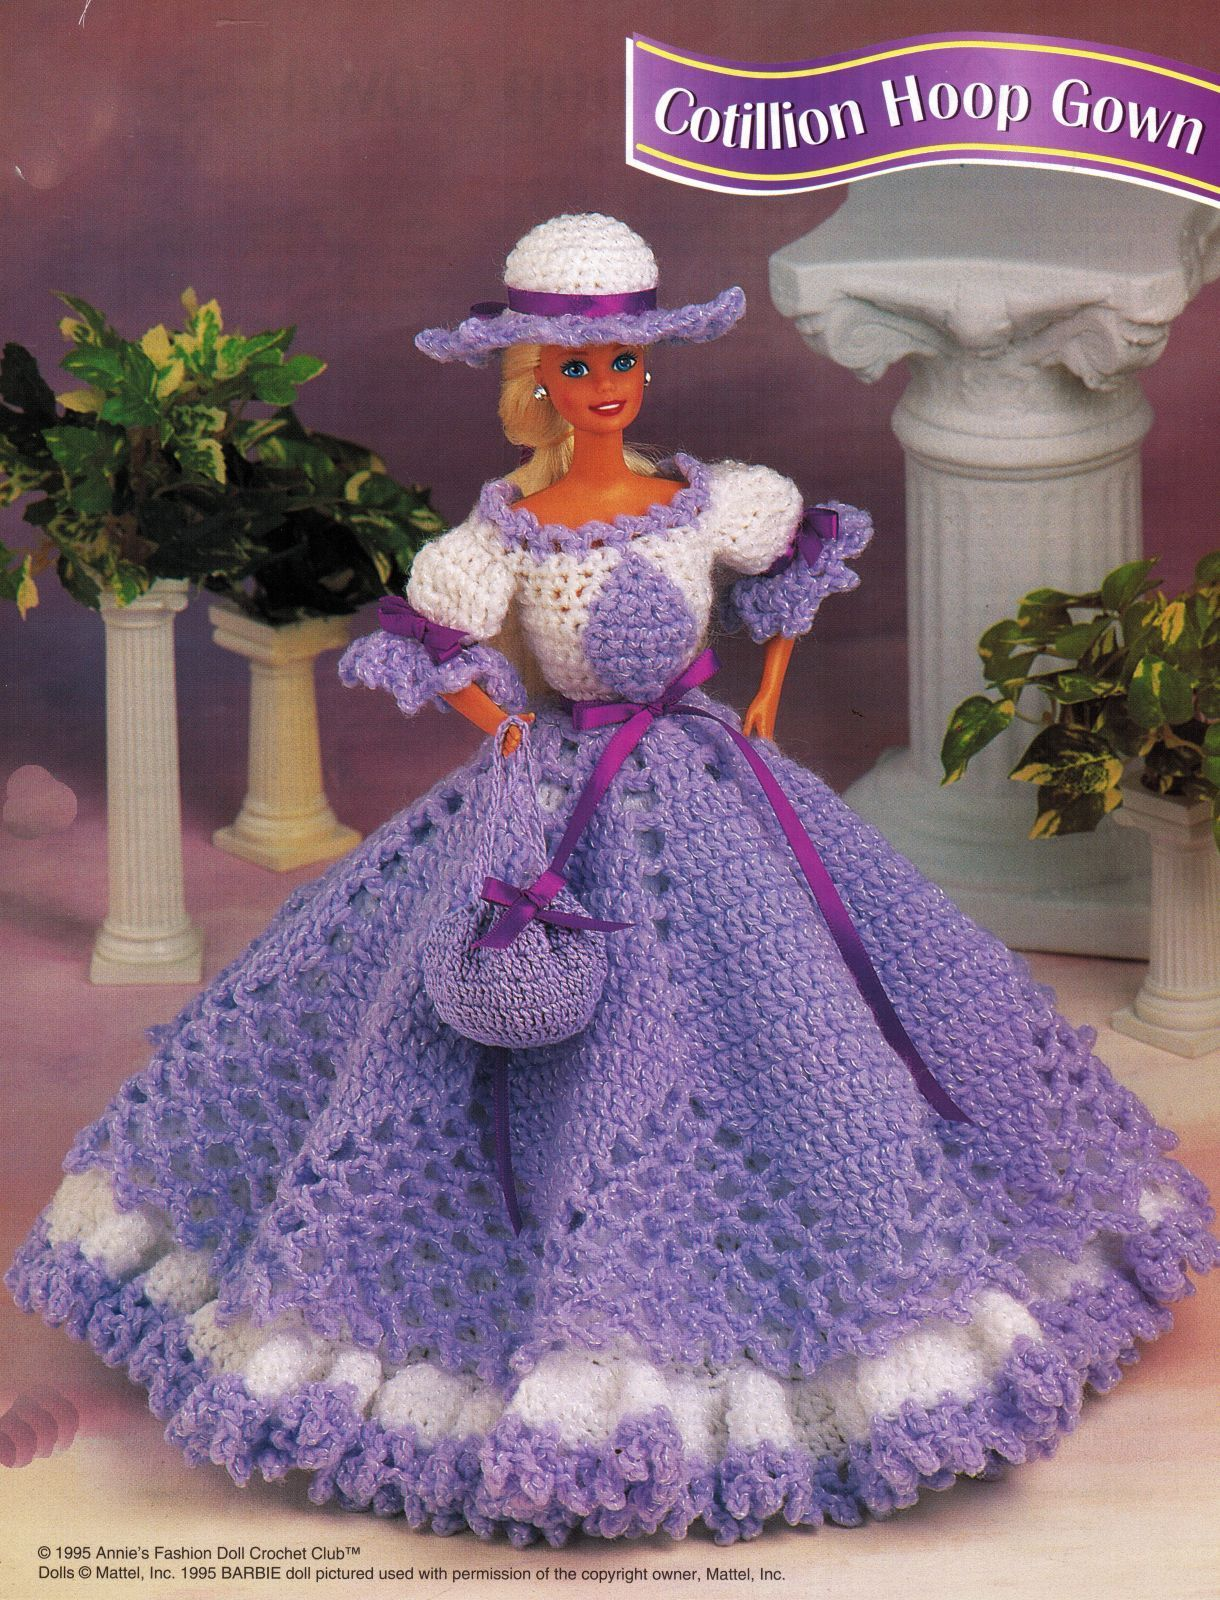 Victorian Cotillion Hoop 17th Century Barbie 11-1/2 Doll Clothes Crochet Pattern image 4